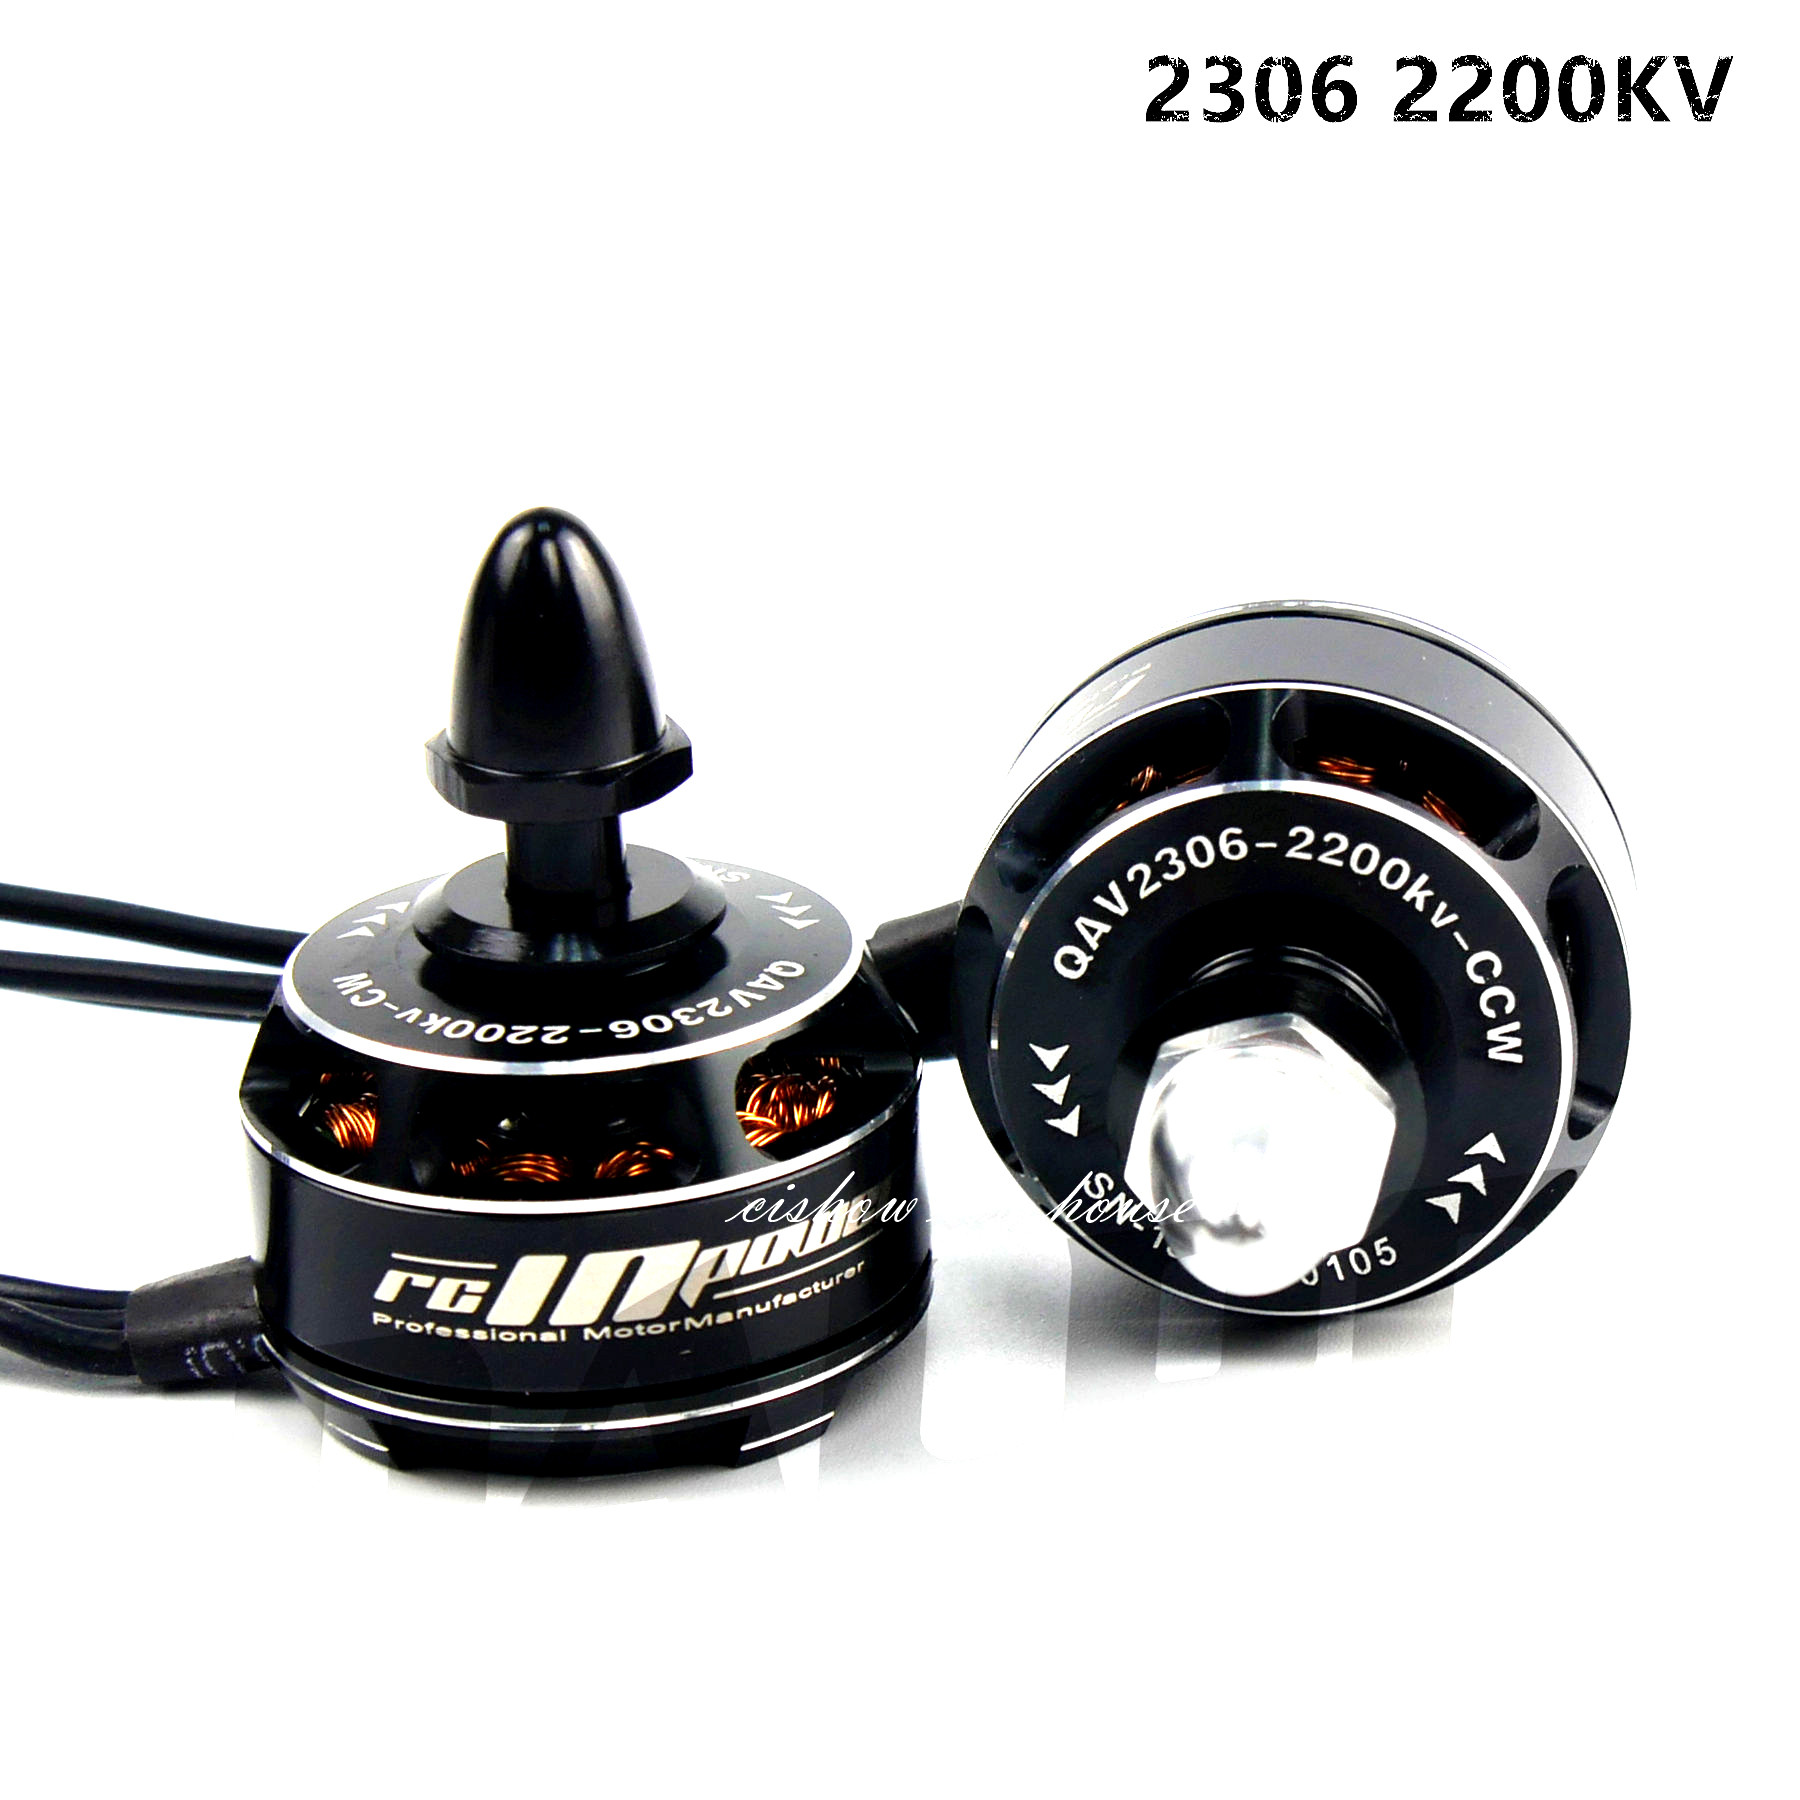 RCINPOWER 2306 2200KV Mini Brushless Motor CW CCW for RC Racing Multicopter FPV ardin hc 2306